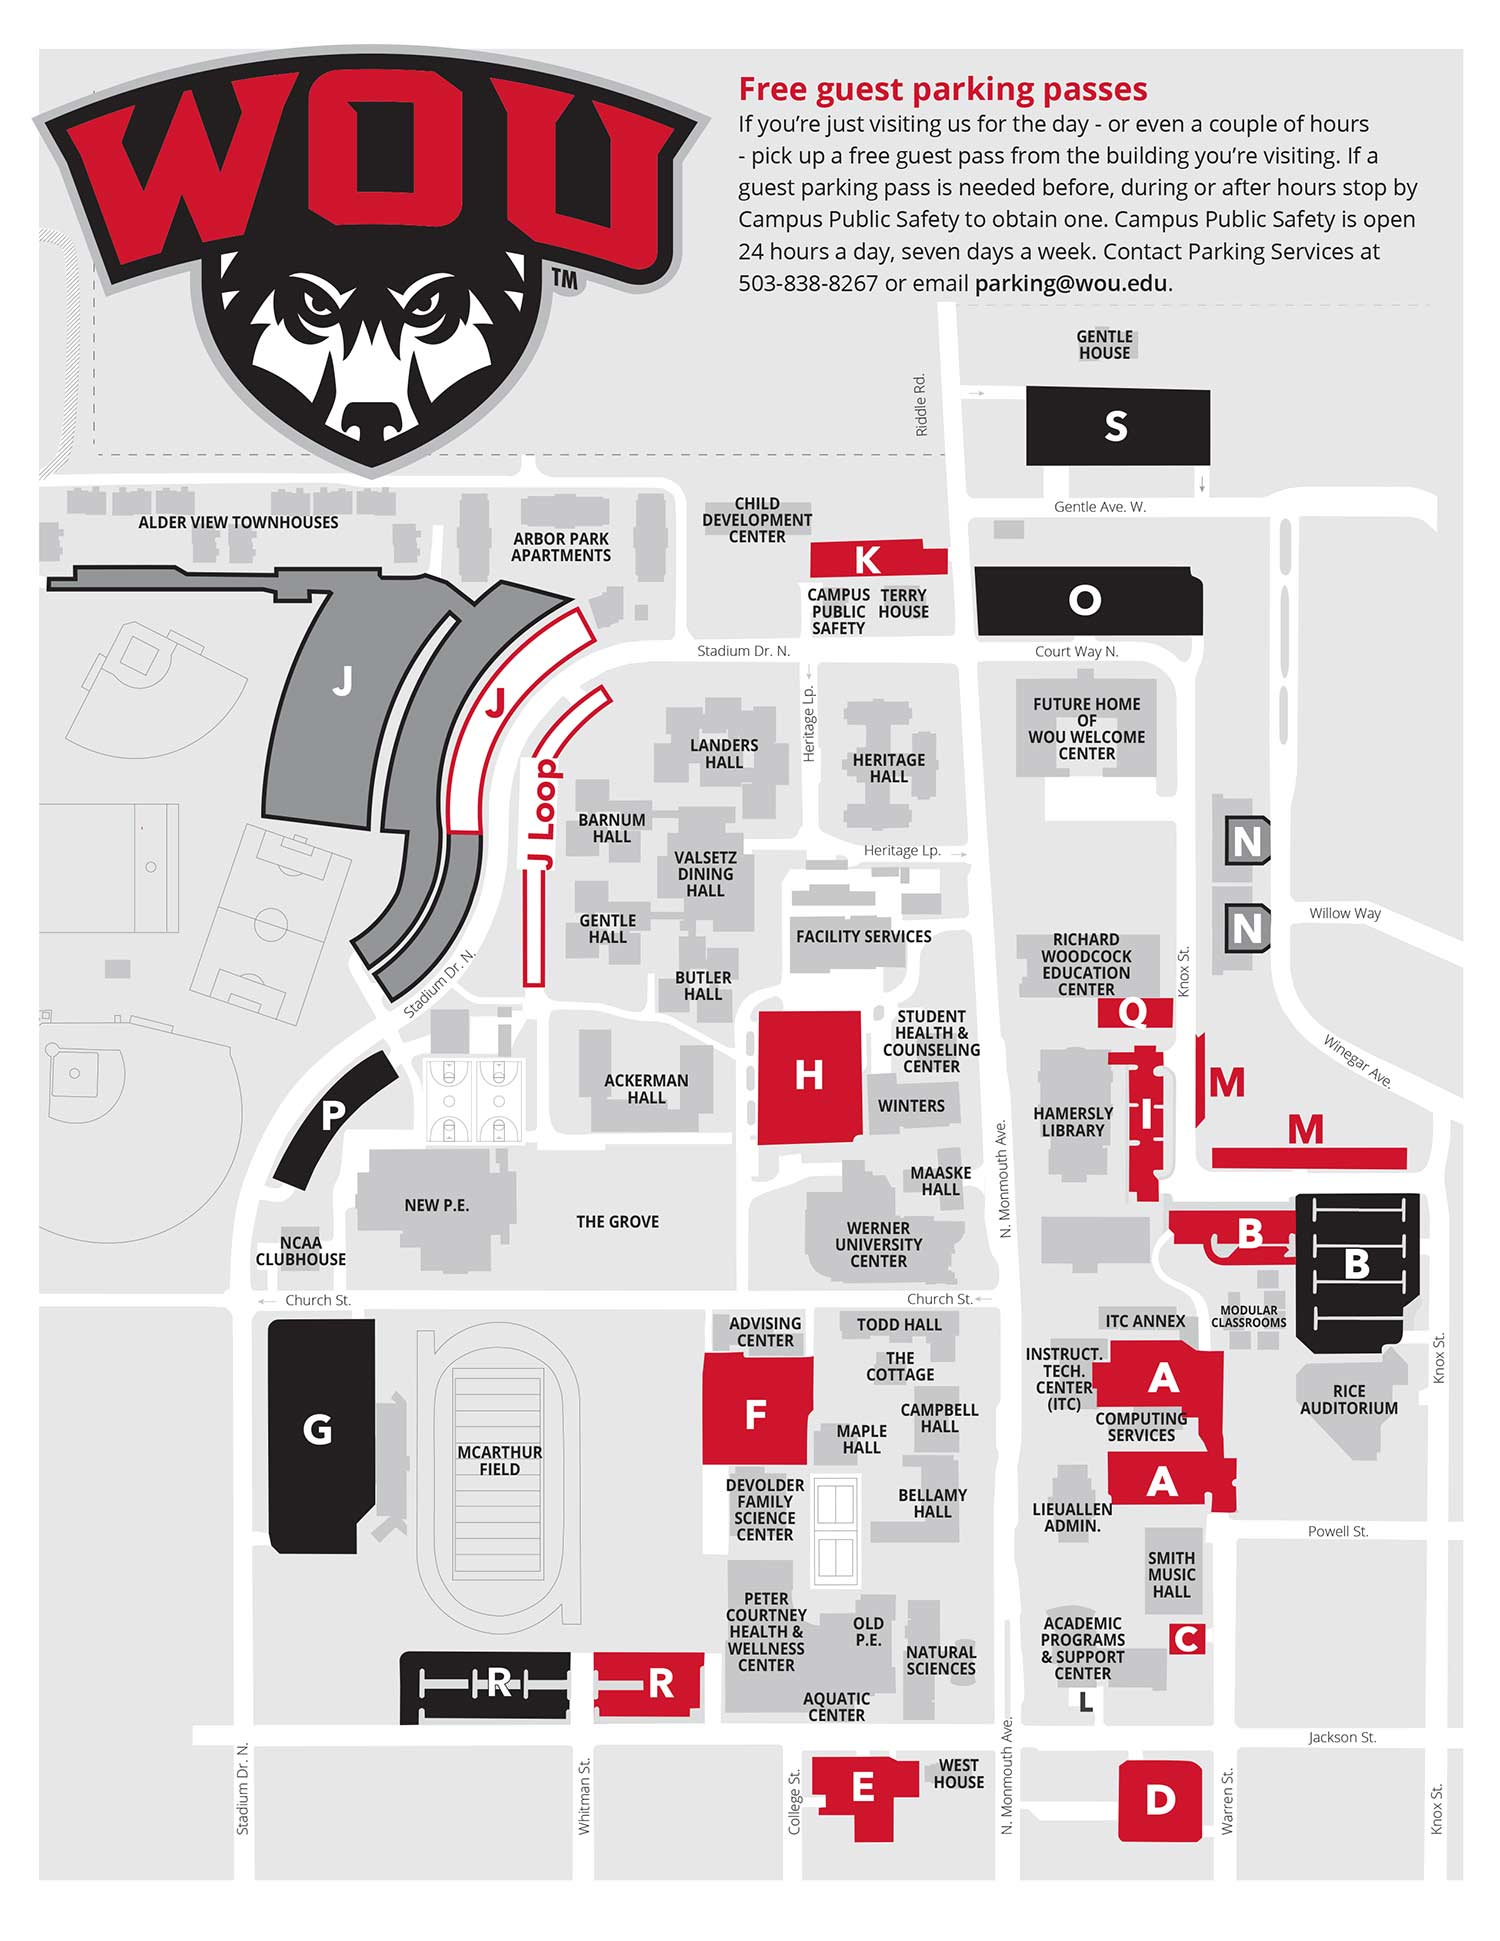 western oregon university campus map Parking Brochure Campus Public Safety western oregon university campus map